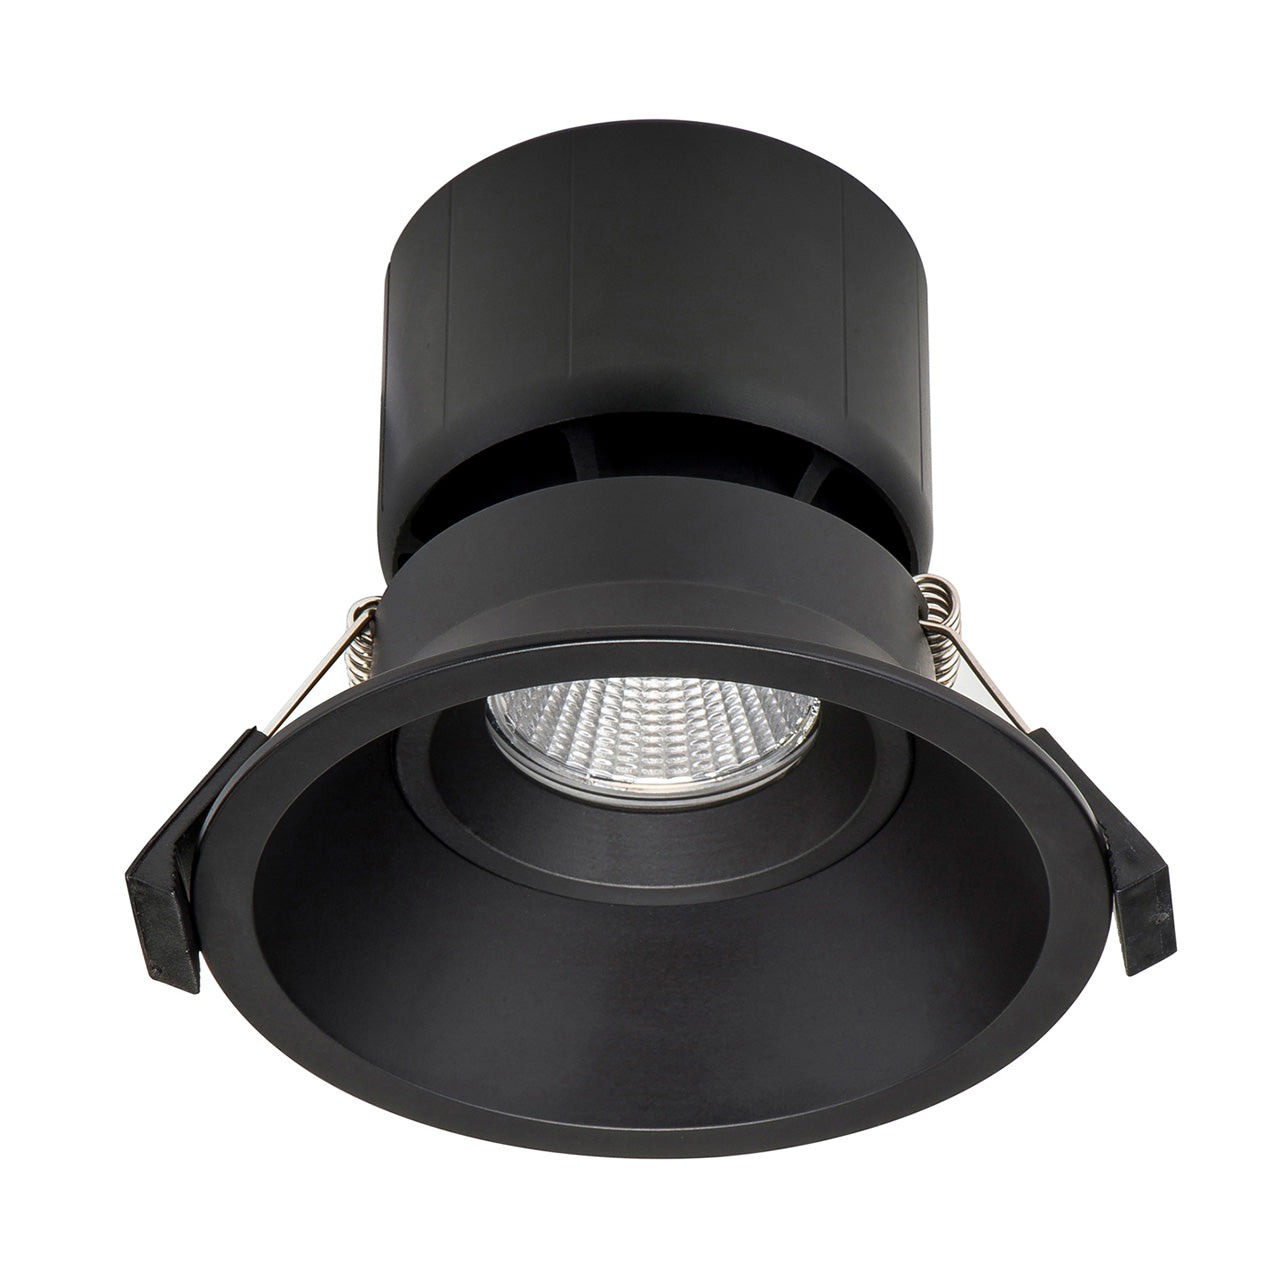 HV5514C-BLK - PRIME Black Fixed Deep LED Downlight